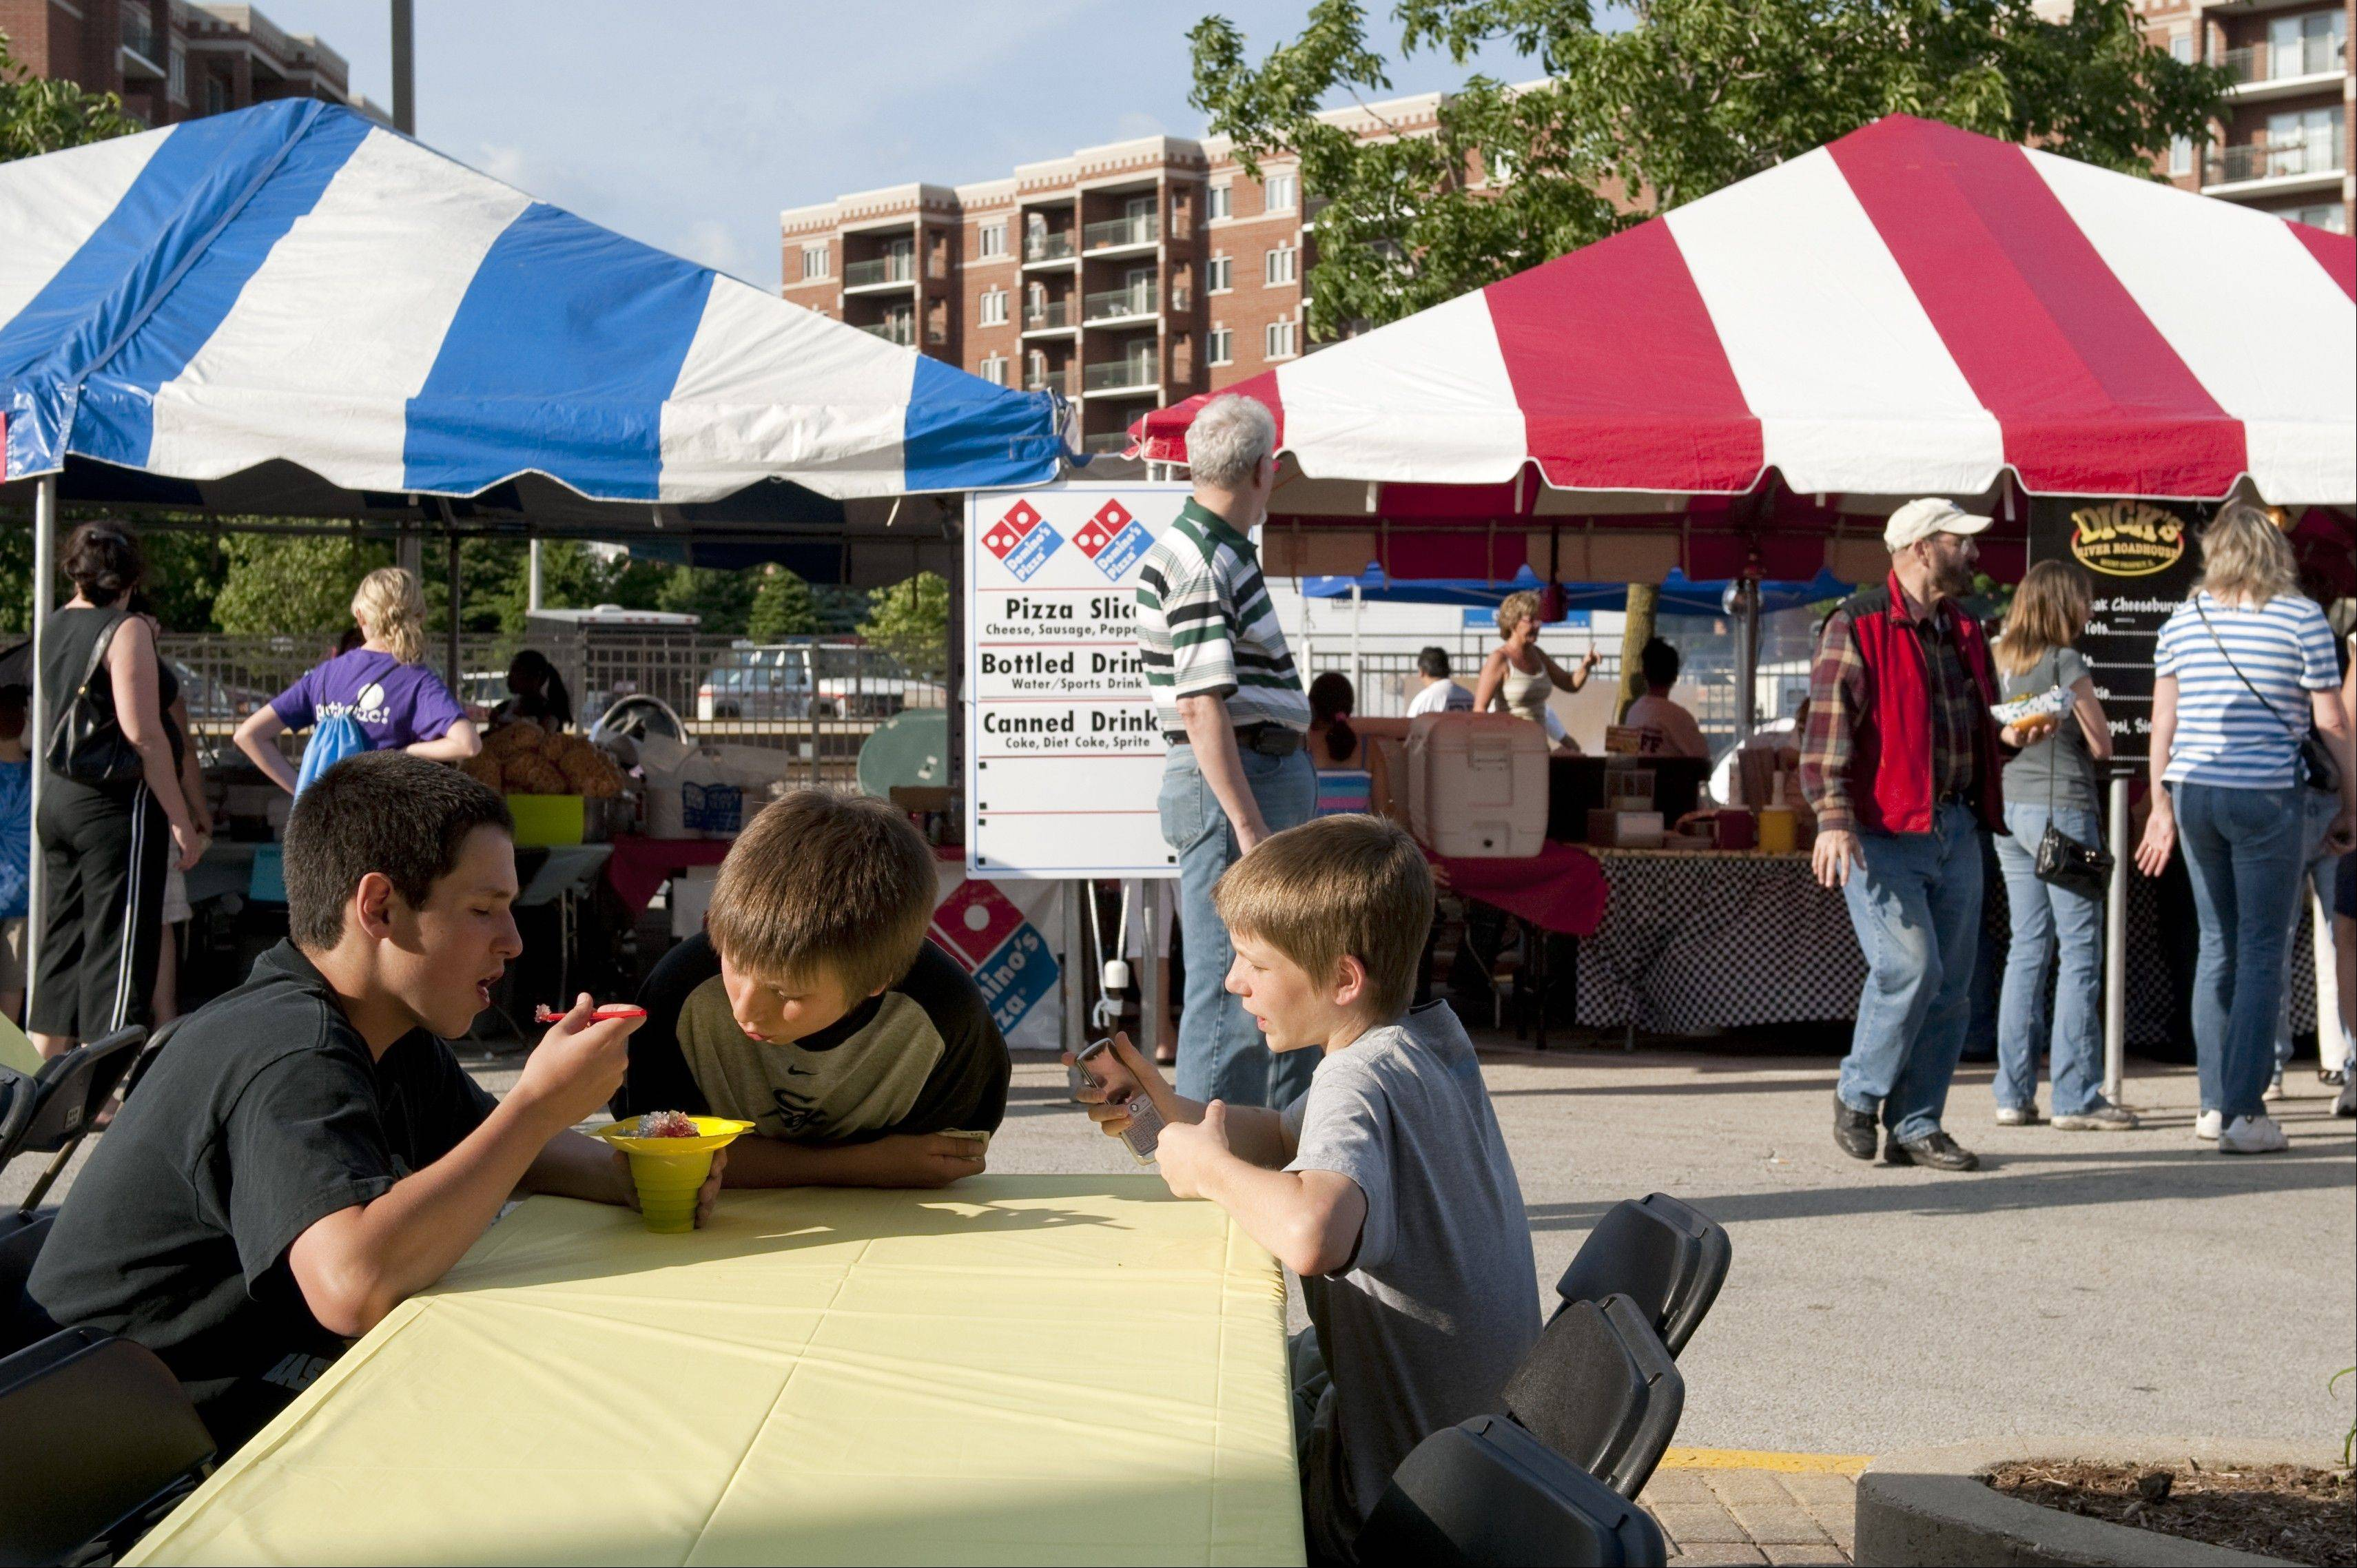 The Taste of Des Plaines, which ended in 2010, was focused on the food. Food will still be a big part of the Fling, organizers say.